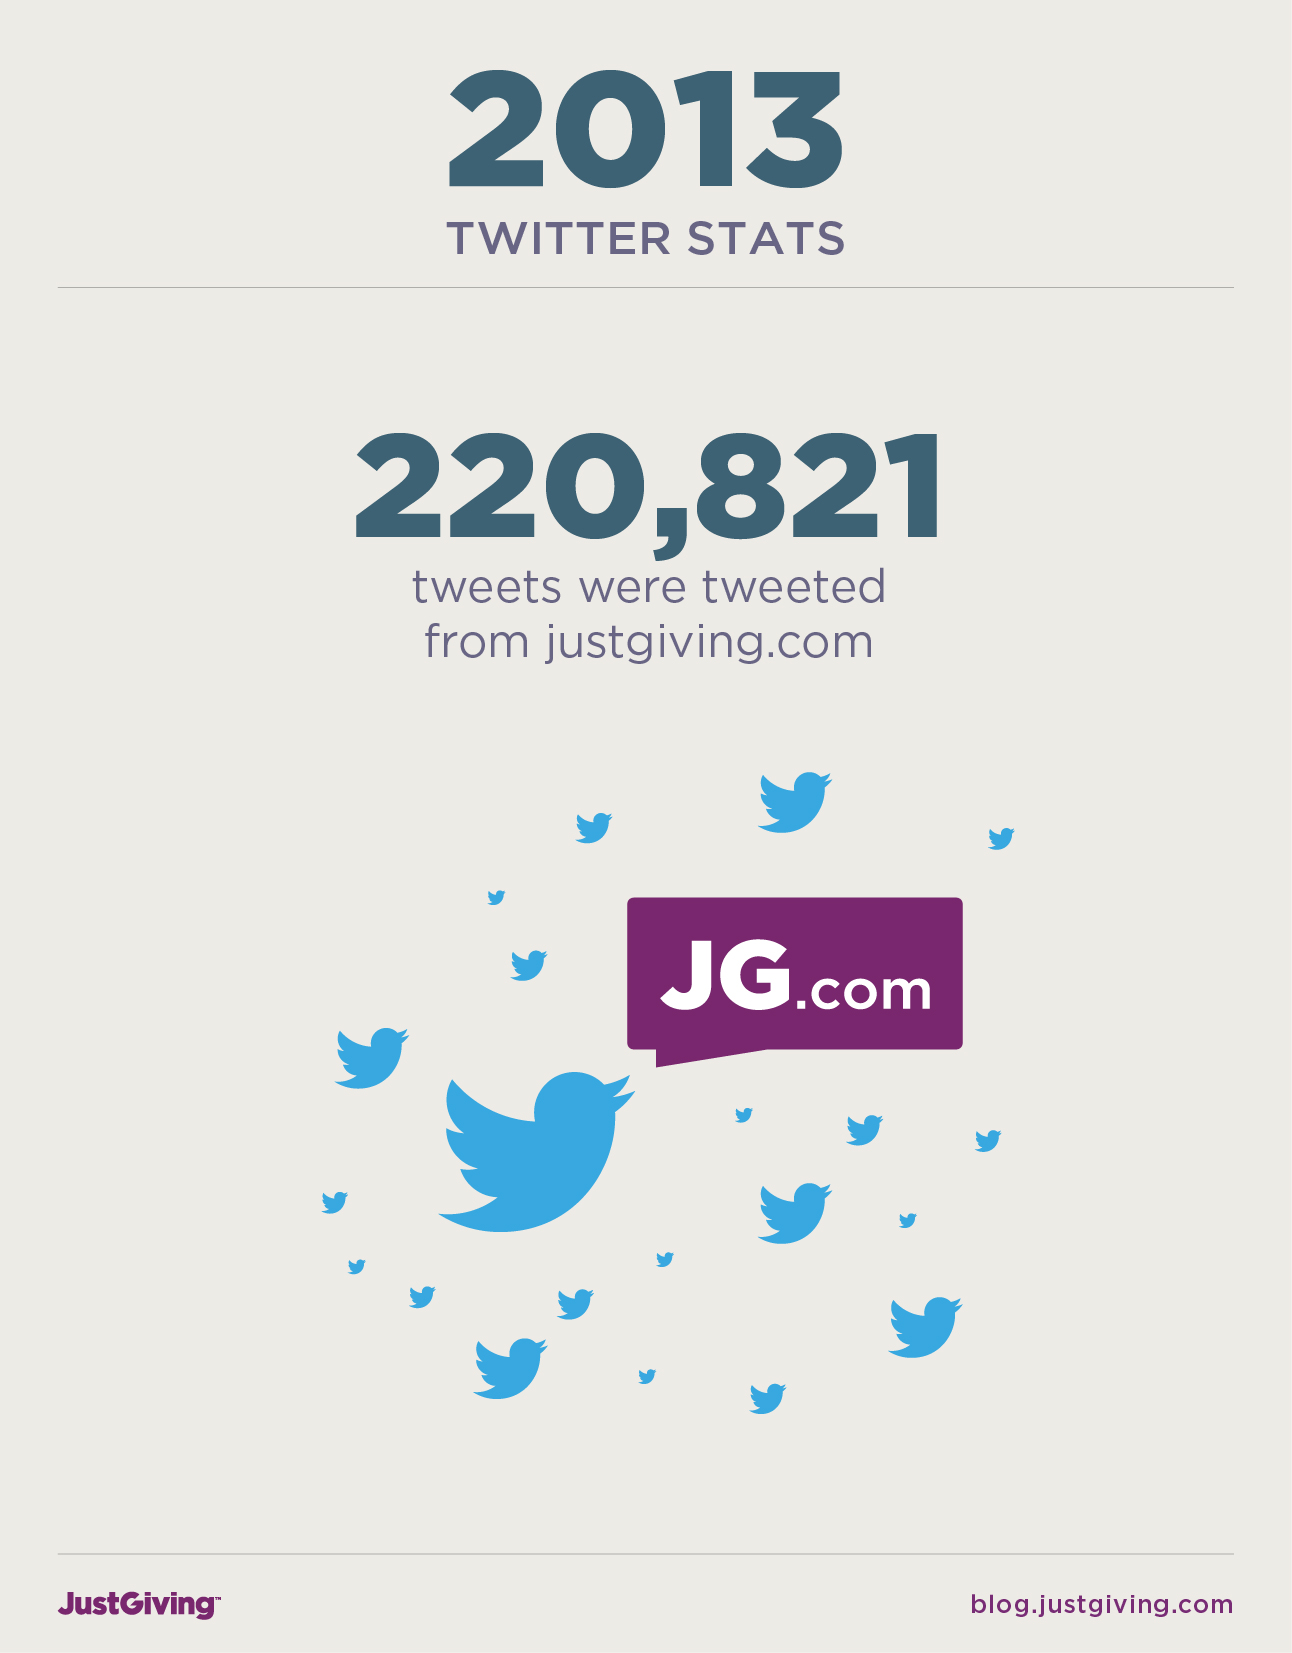 Over 220,000 tweets were tweeted from JustGiving.com